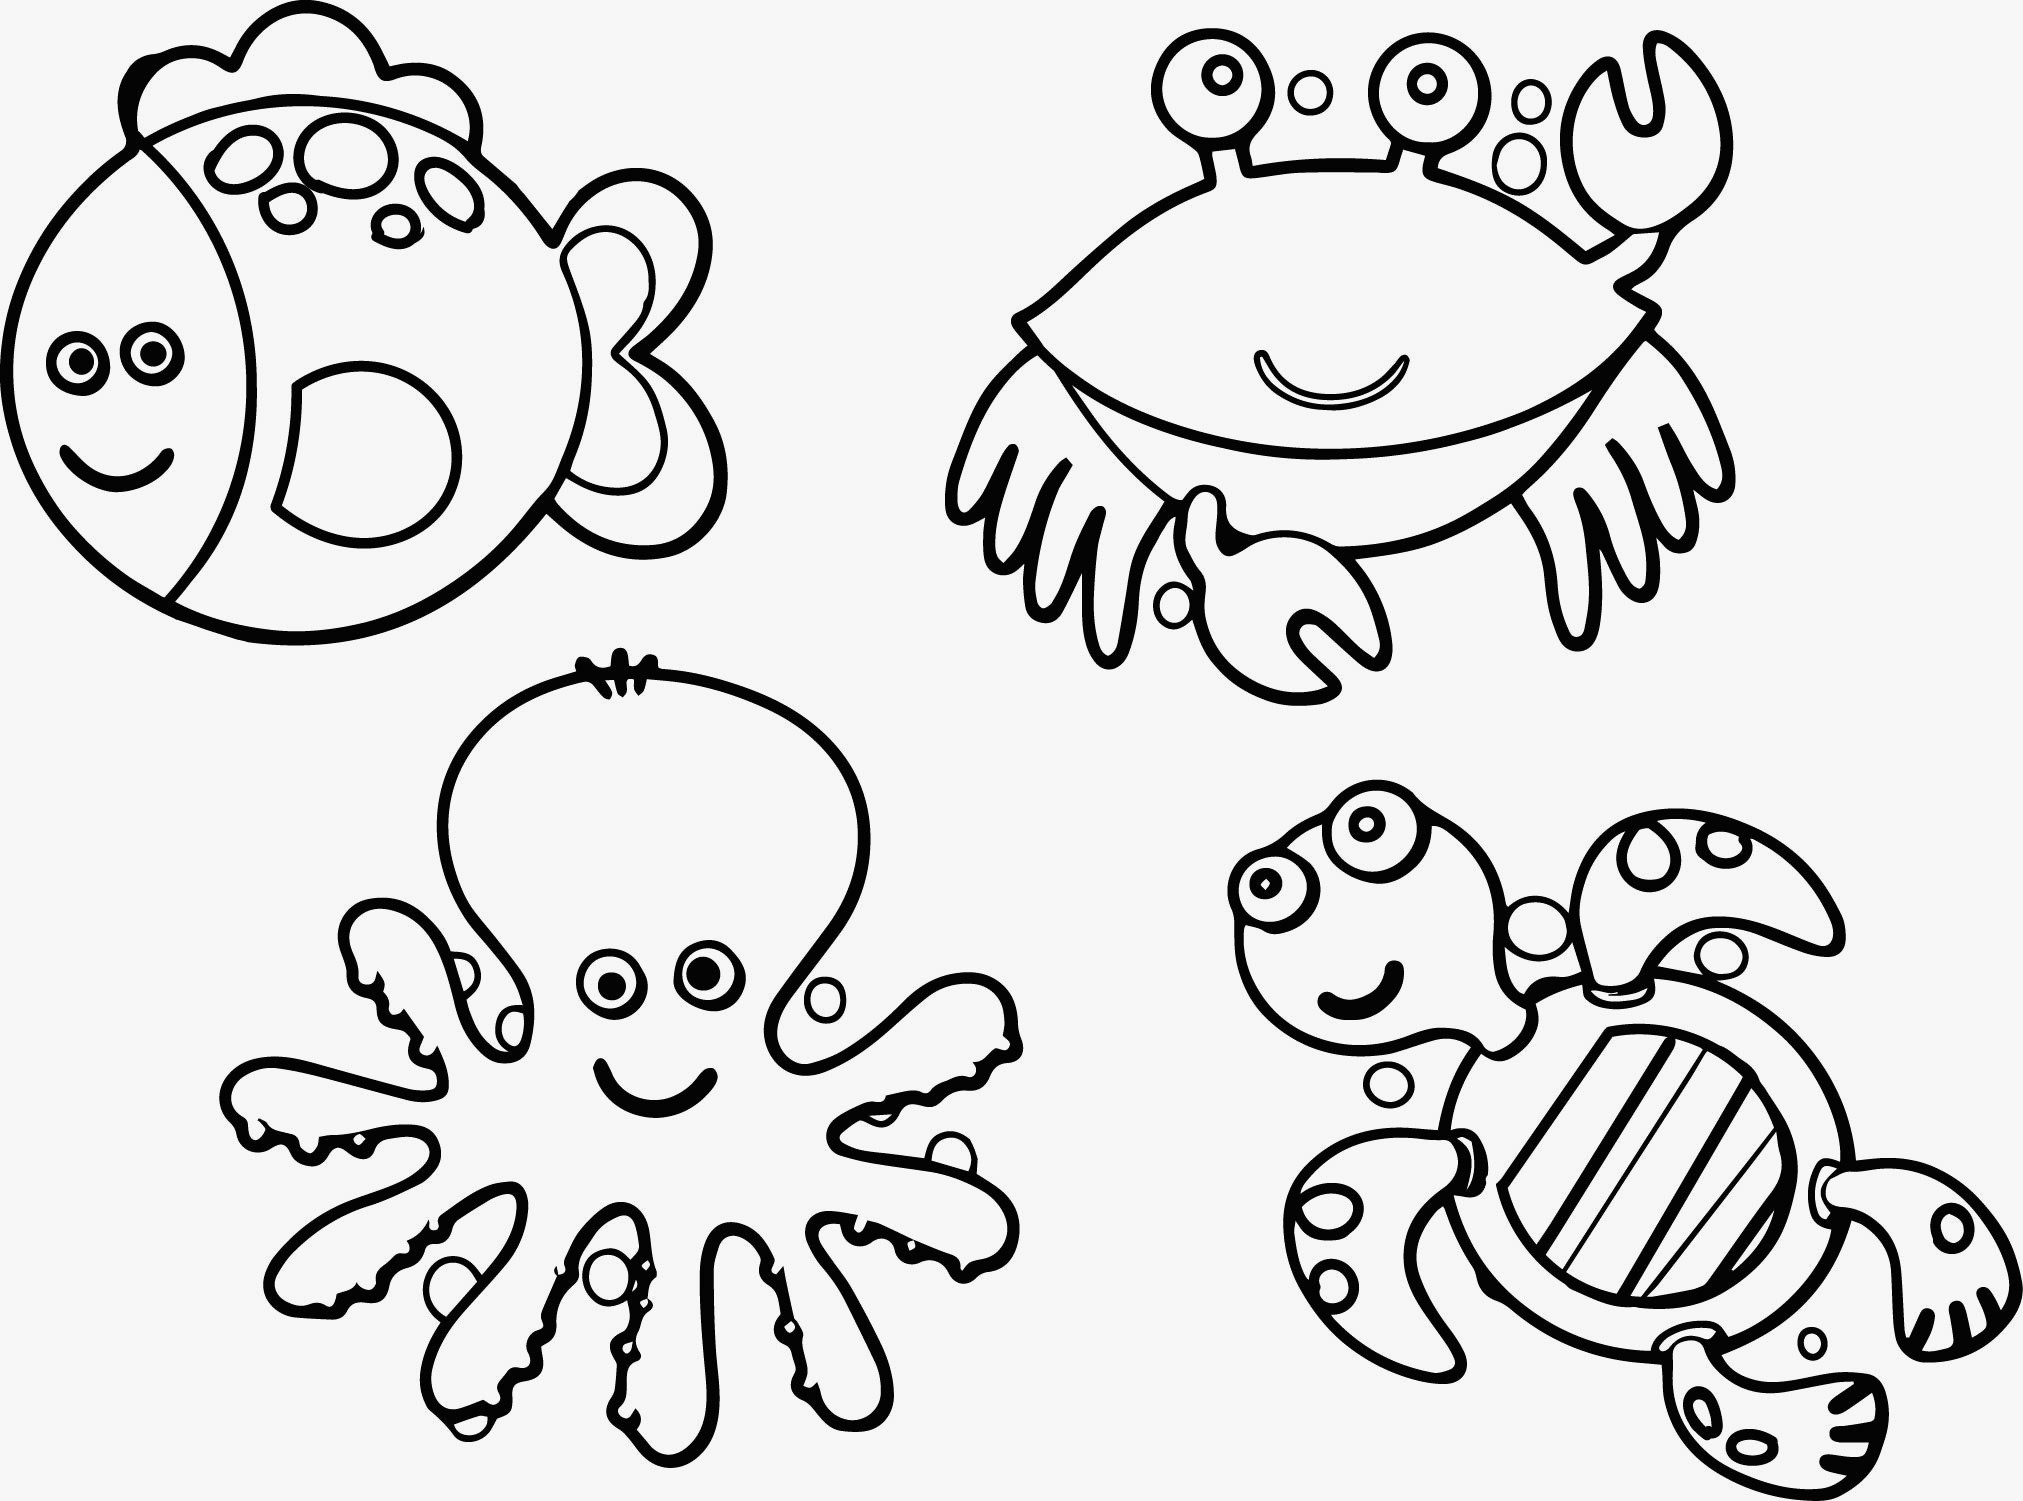 underwater-animals-coloring-pages-of-underwater-animals-coloring-pages Underwater Animals Coloring Pages Animal